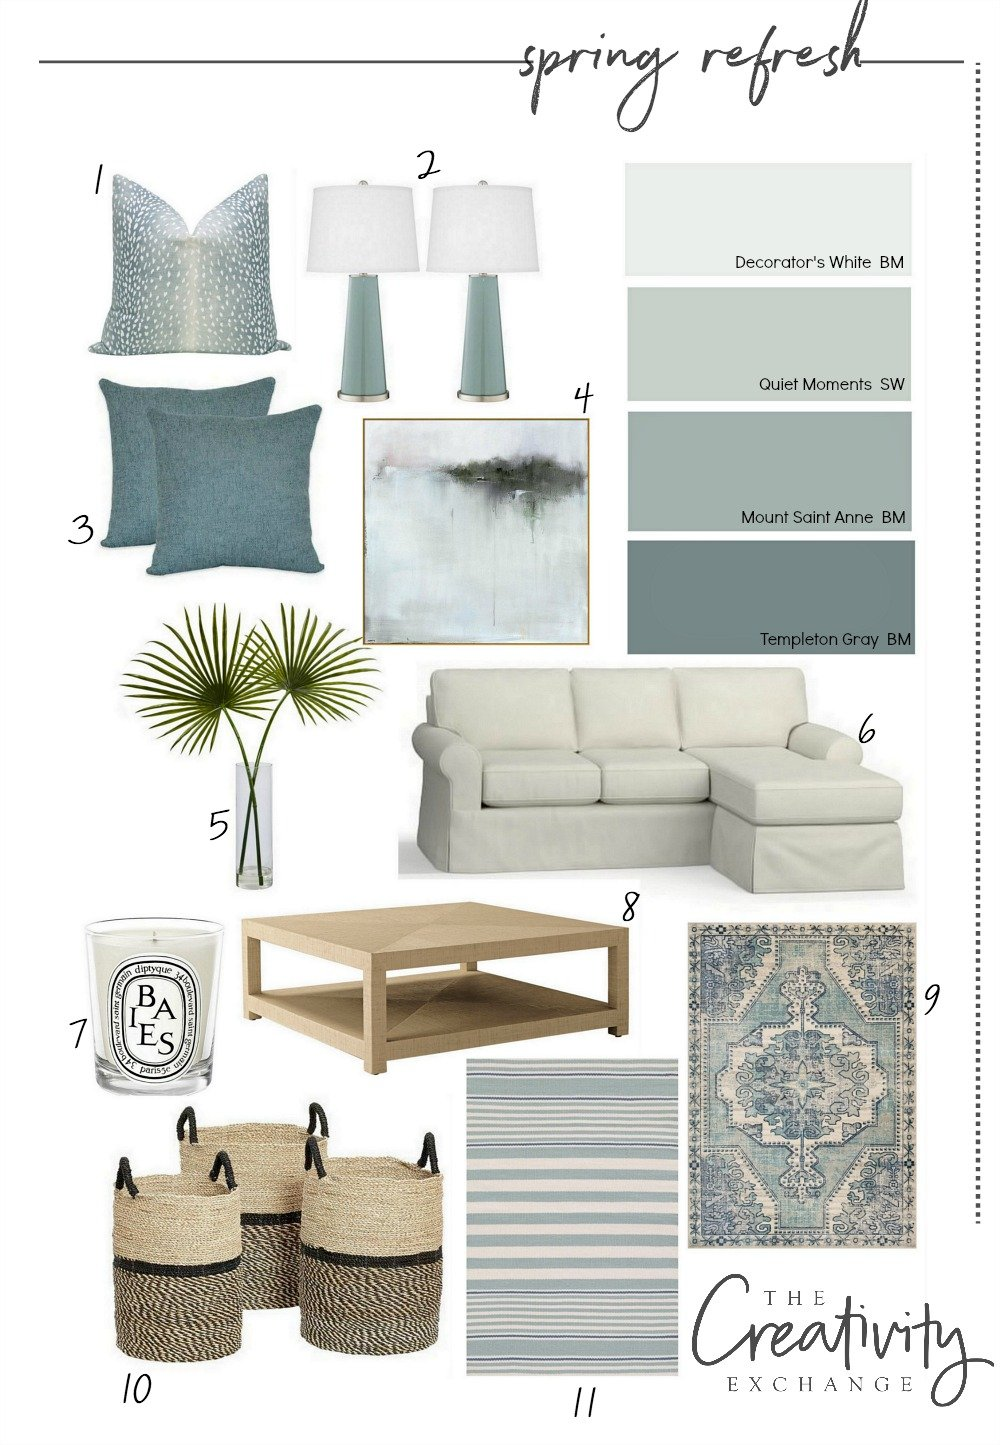 Spring home refresh design board